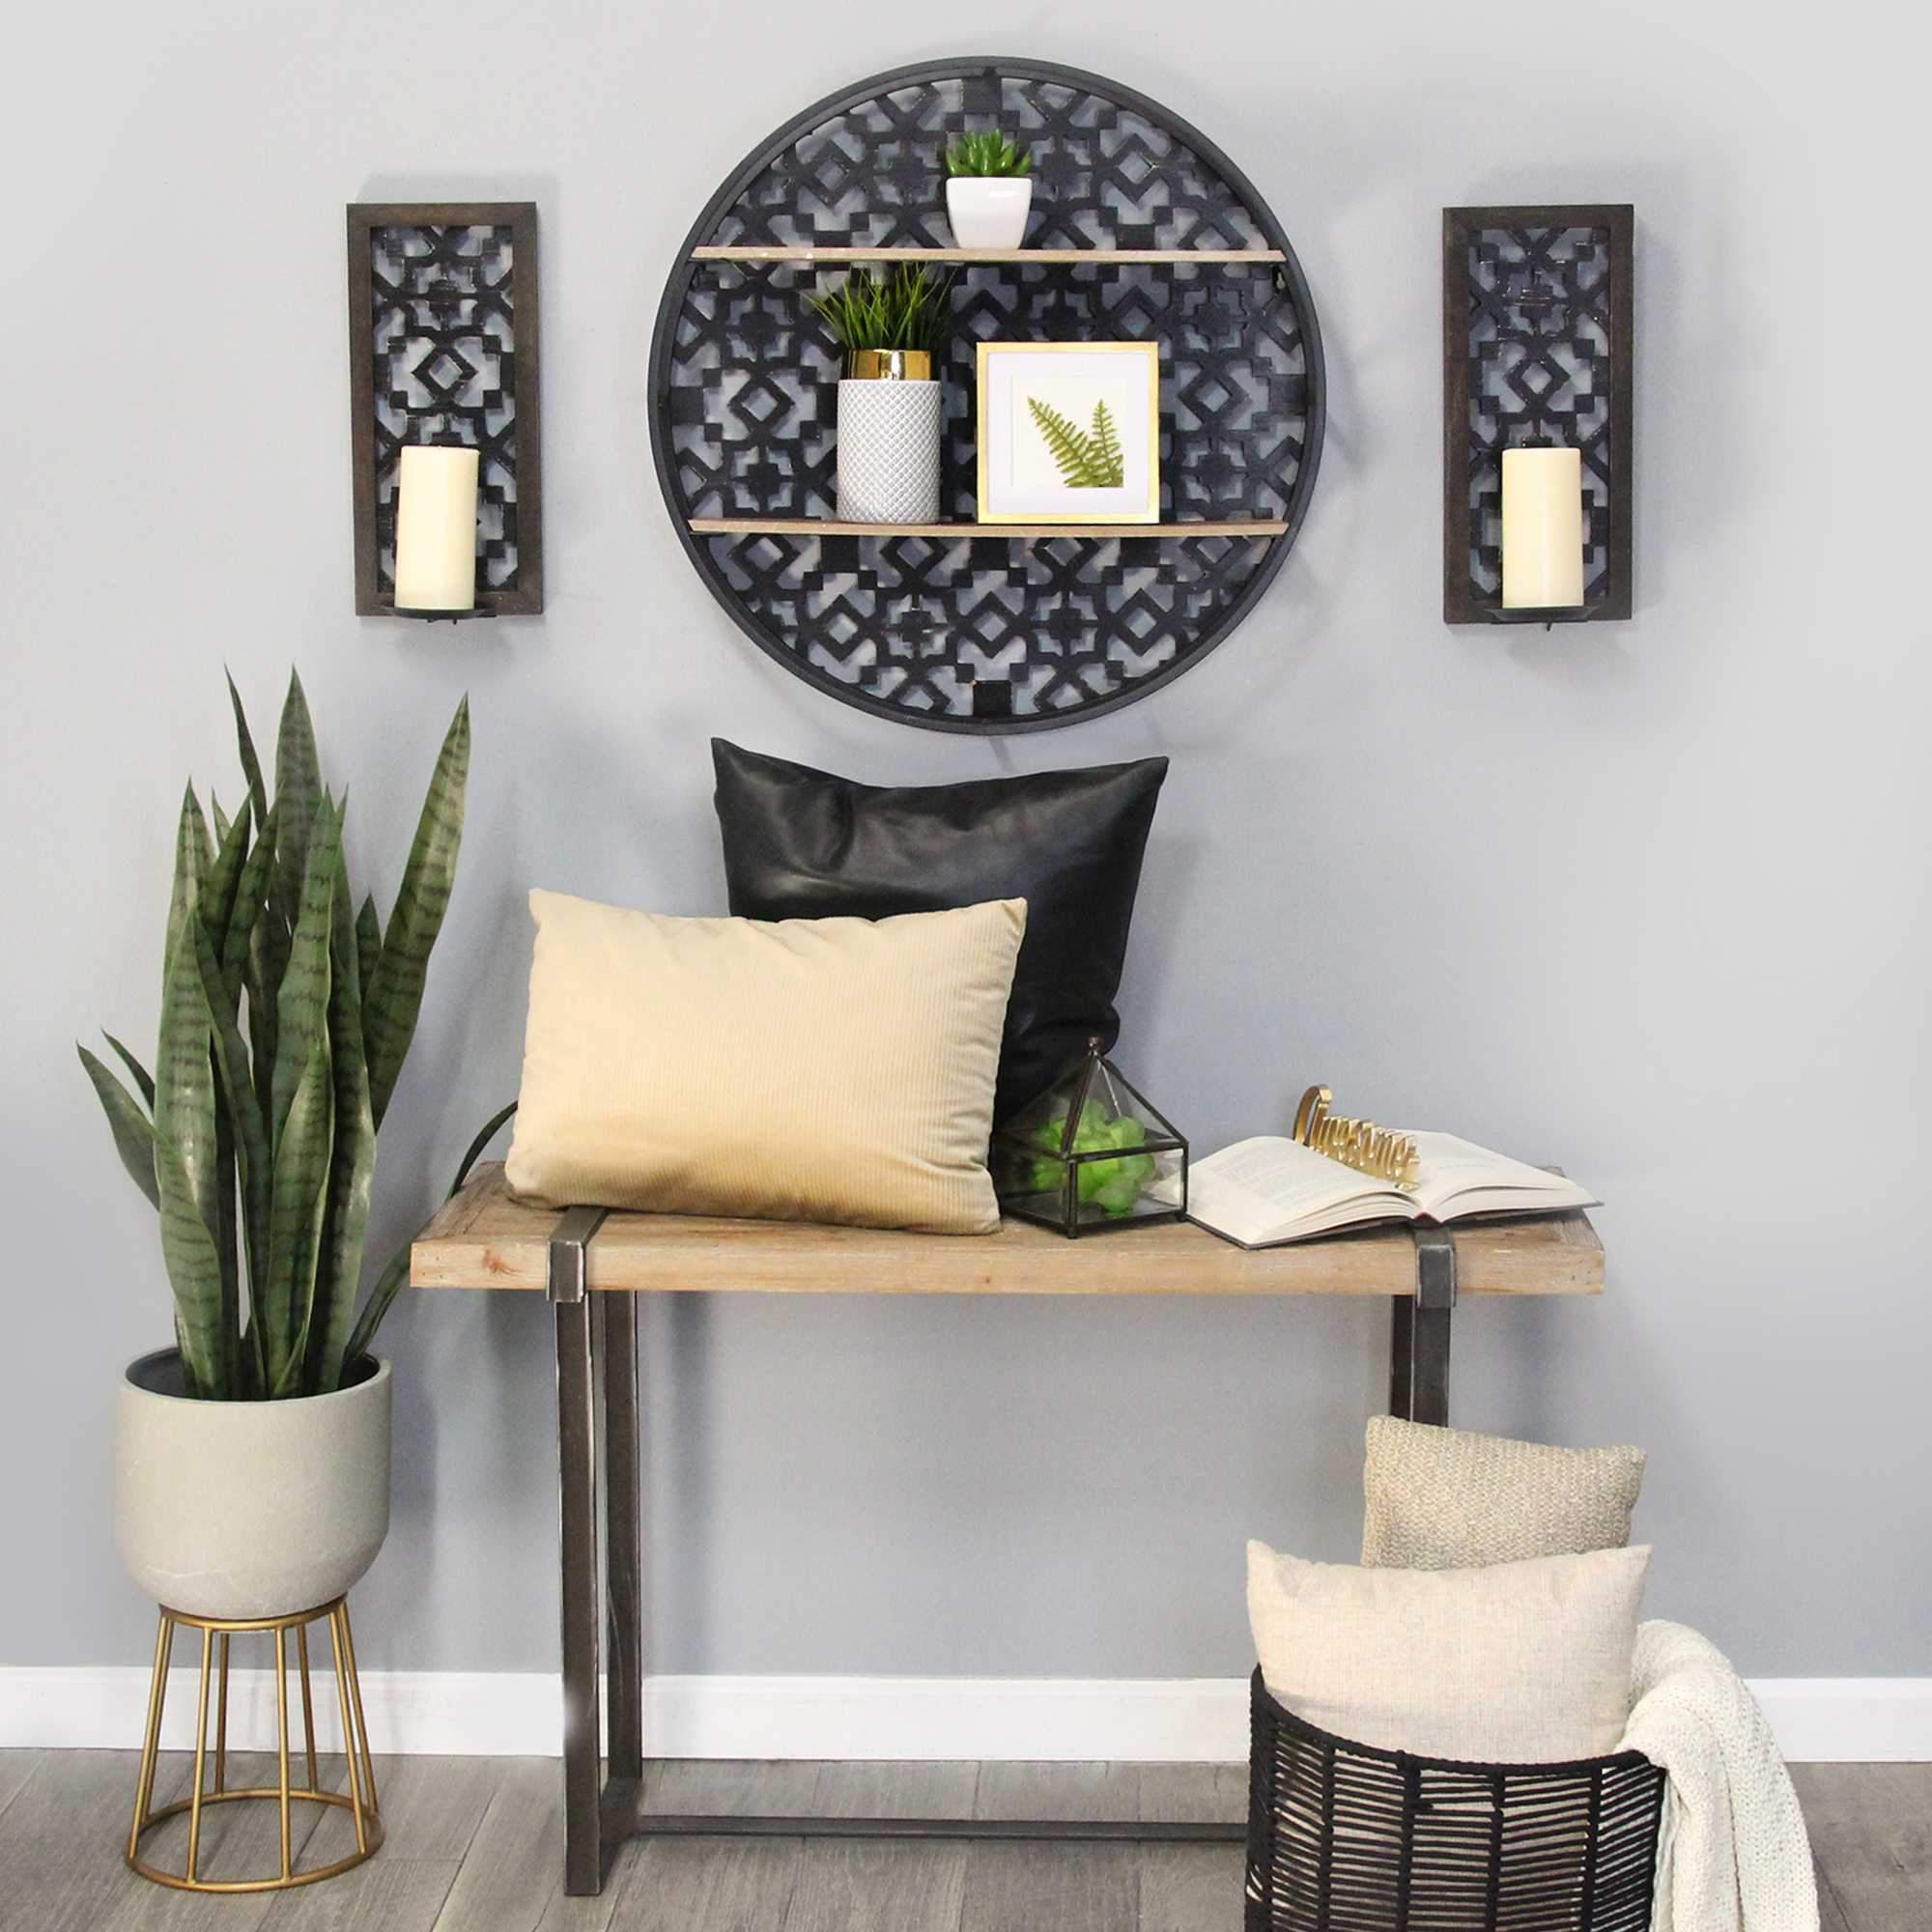 Black Boho Metal & Wood Framed Shelf Wall Decor HomeRoots